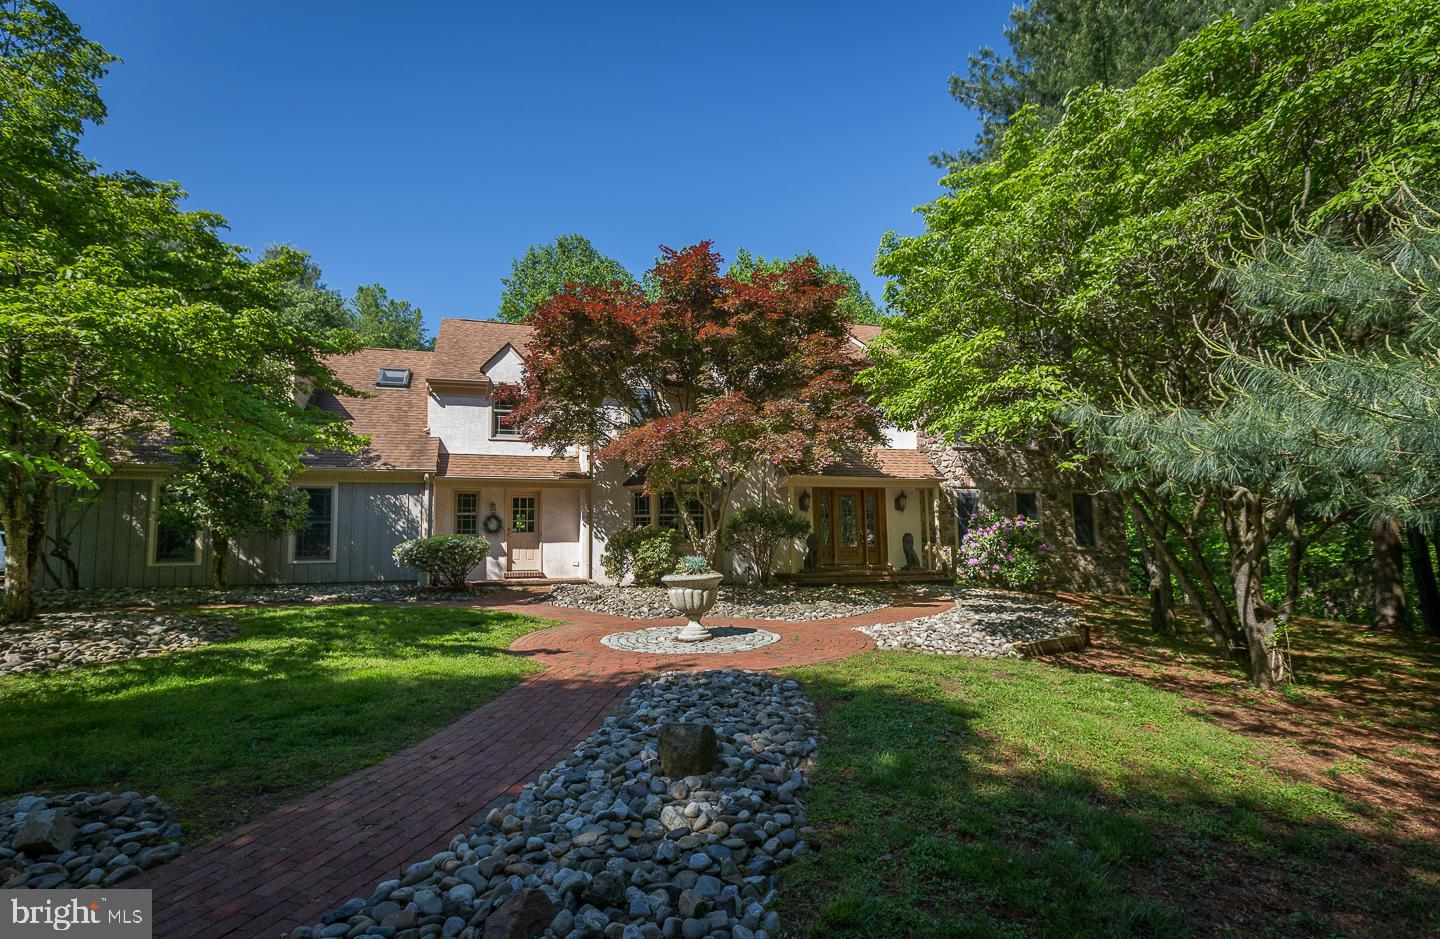 4 BITTERSWEET DRIVE, WEST CHESTER, PA 19382